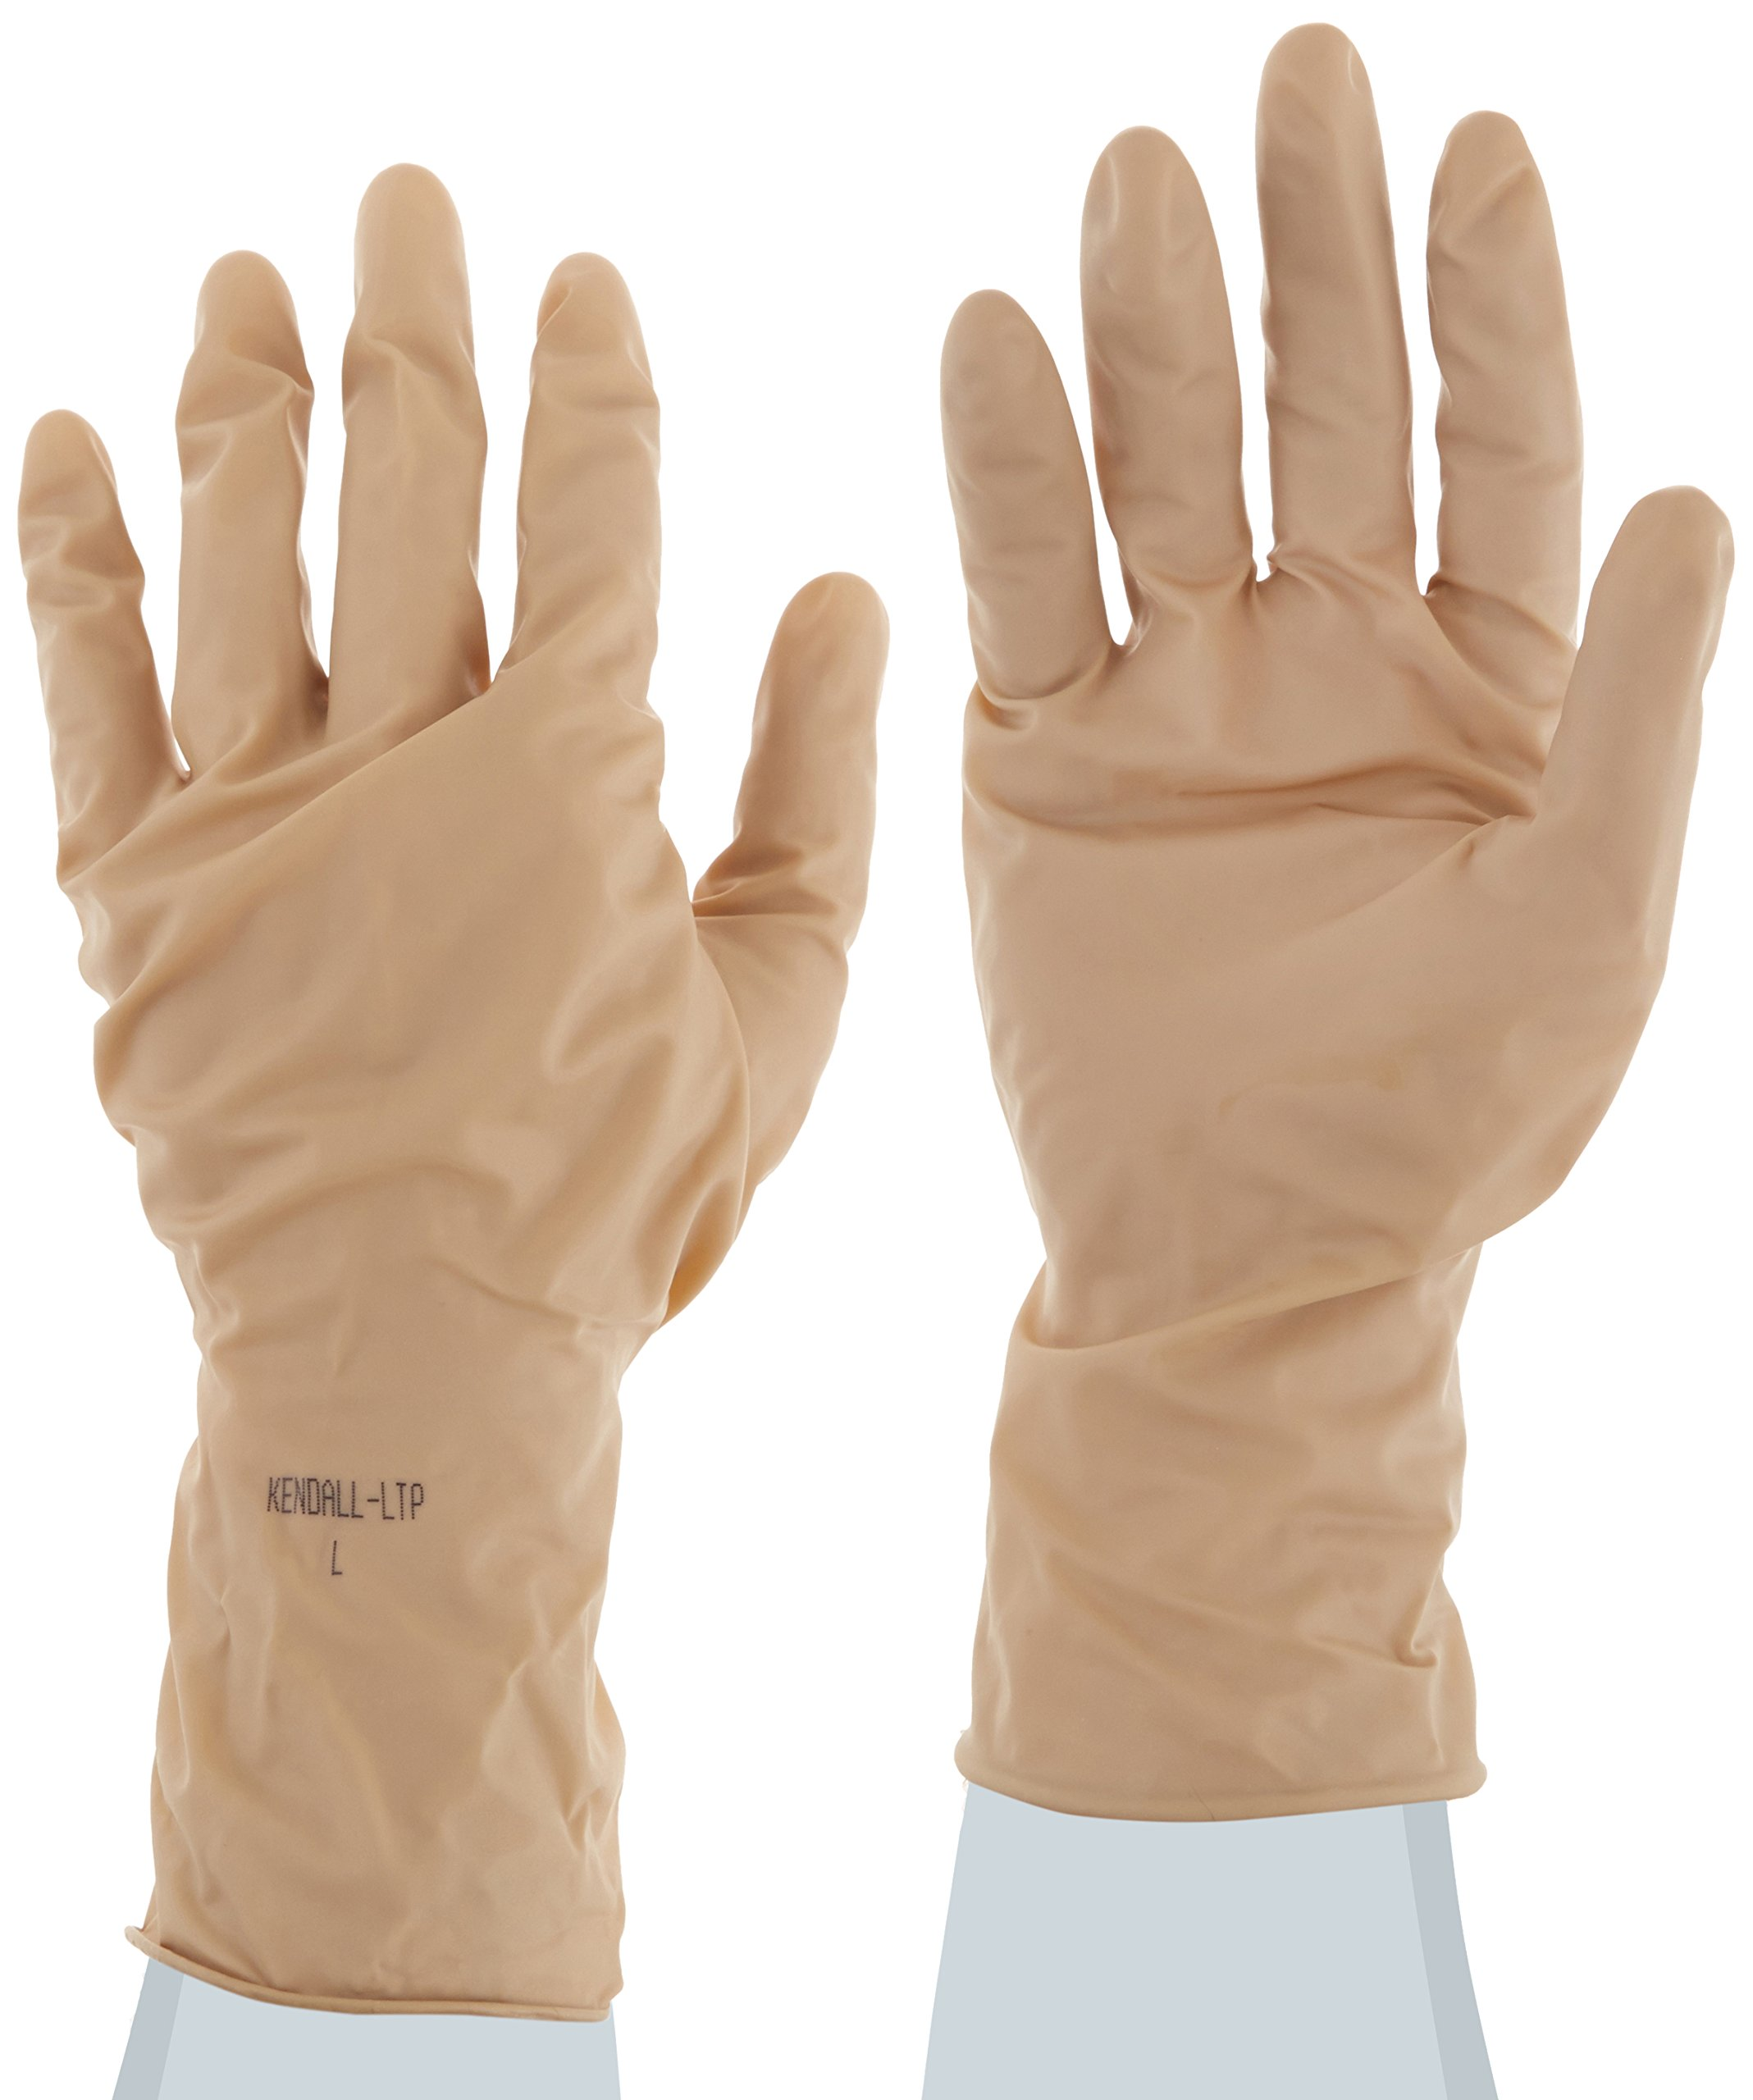 Kendall CT21931 ChemoPlus Neoprene Hand Specific Glove, Non-Sterile, Beaded Cuff, Powder-Free, 9 mil Thickness, 12'' Length, Large (Case of 300)